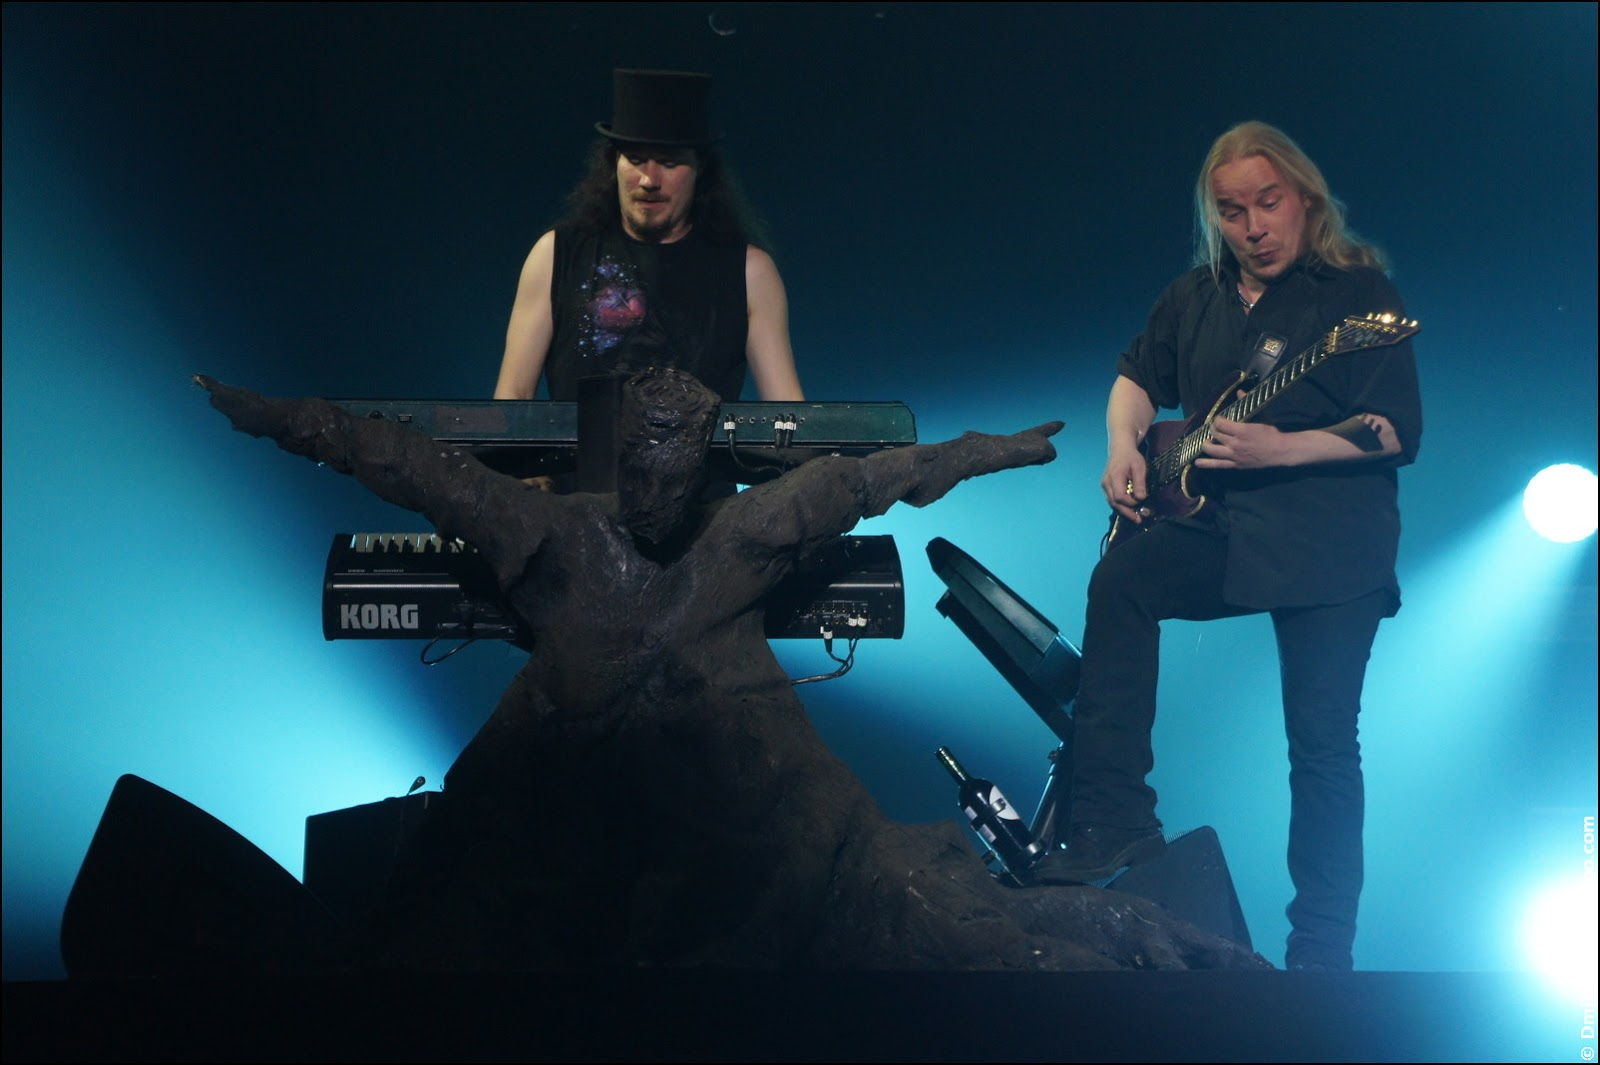 Nightwish: Tuomas Holopainen and Emppu Vuorinen.